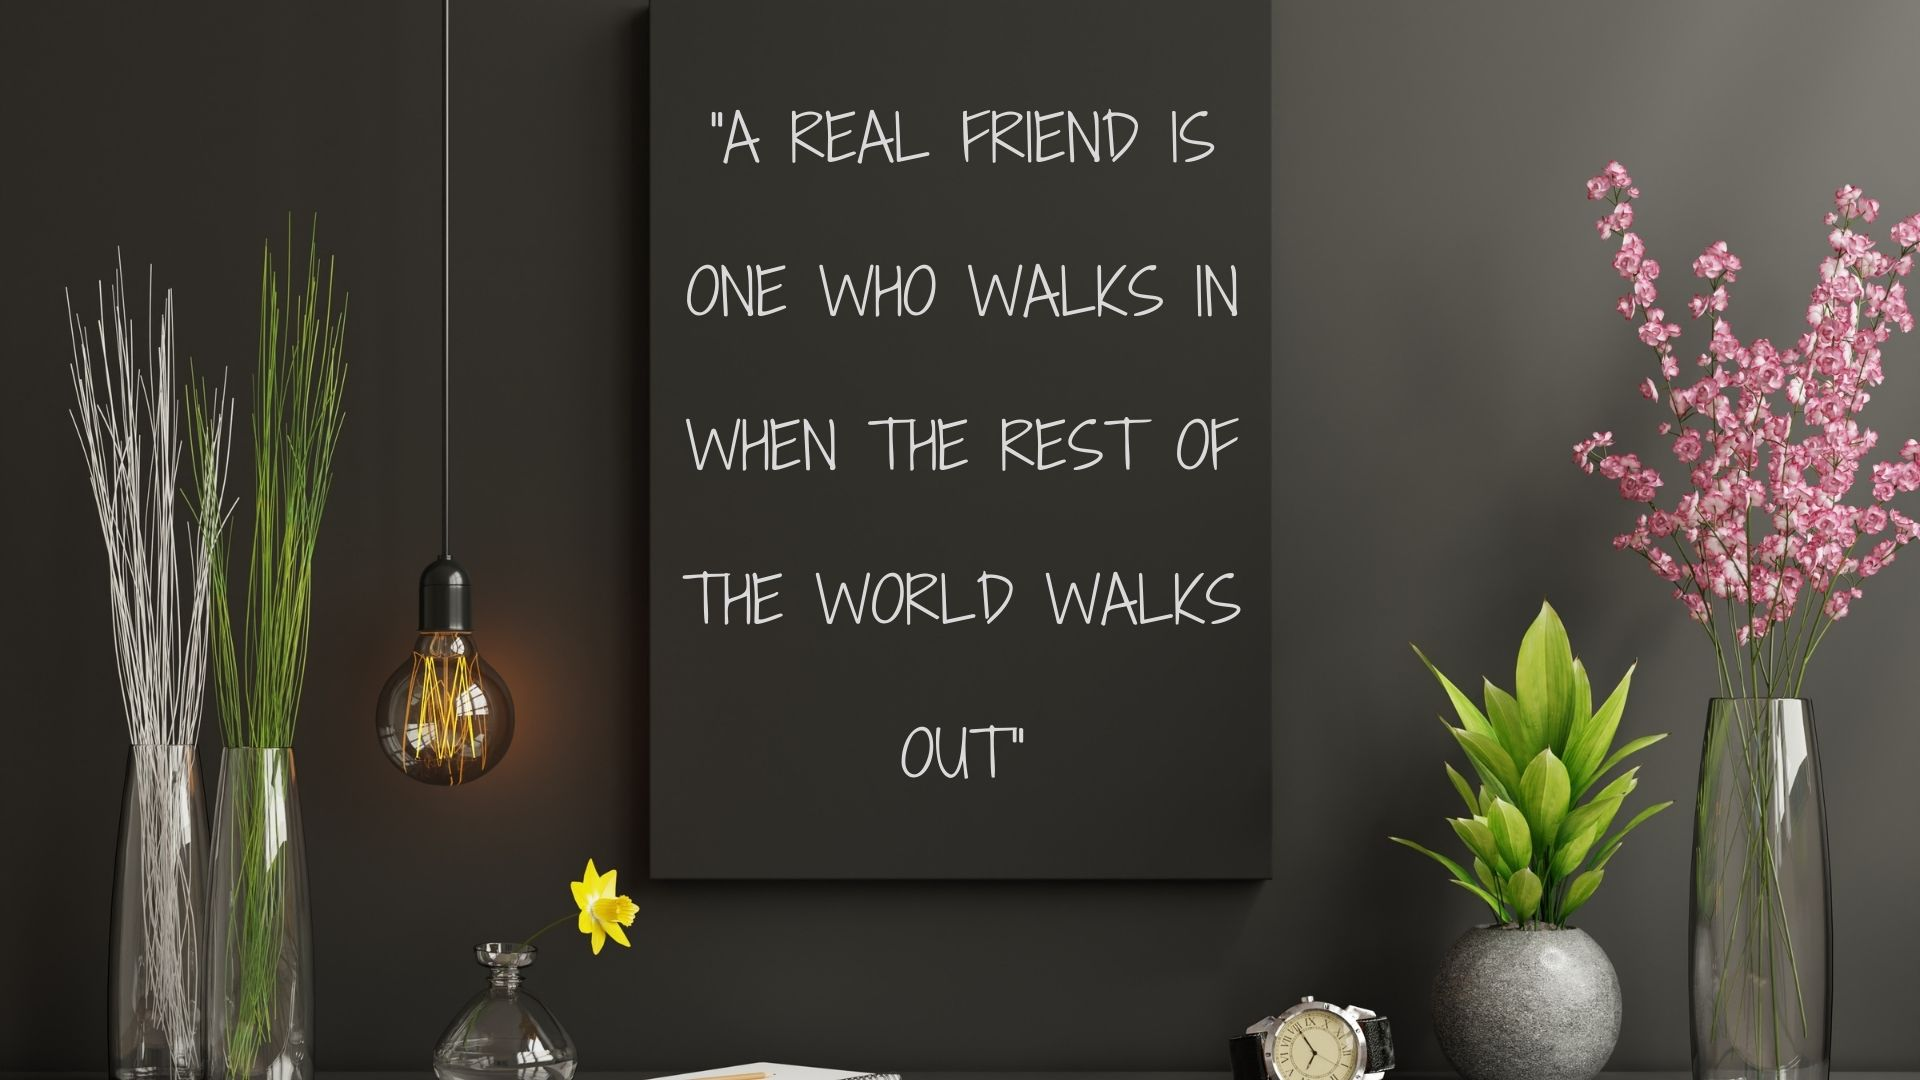 A real friend is one who walks in when the rest of the world walks out